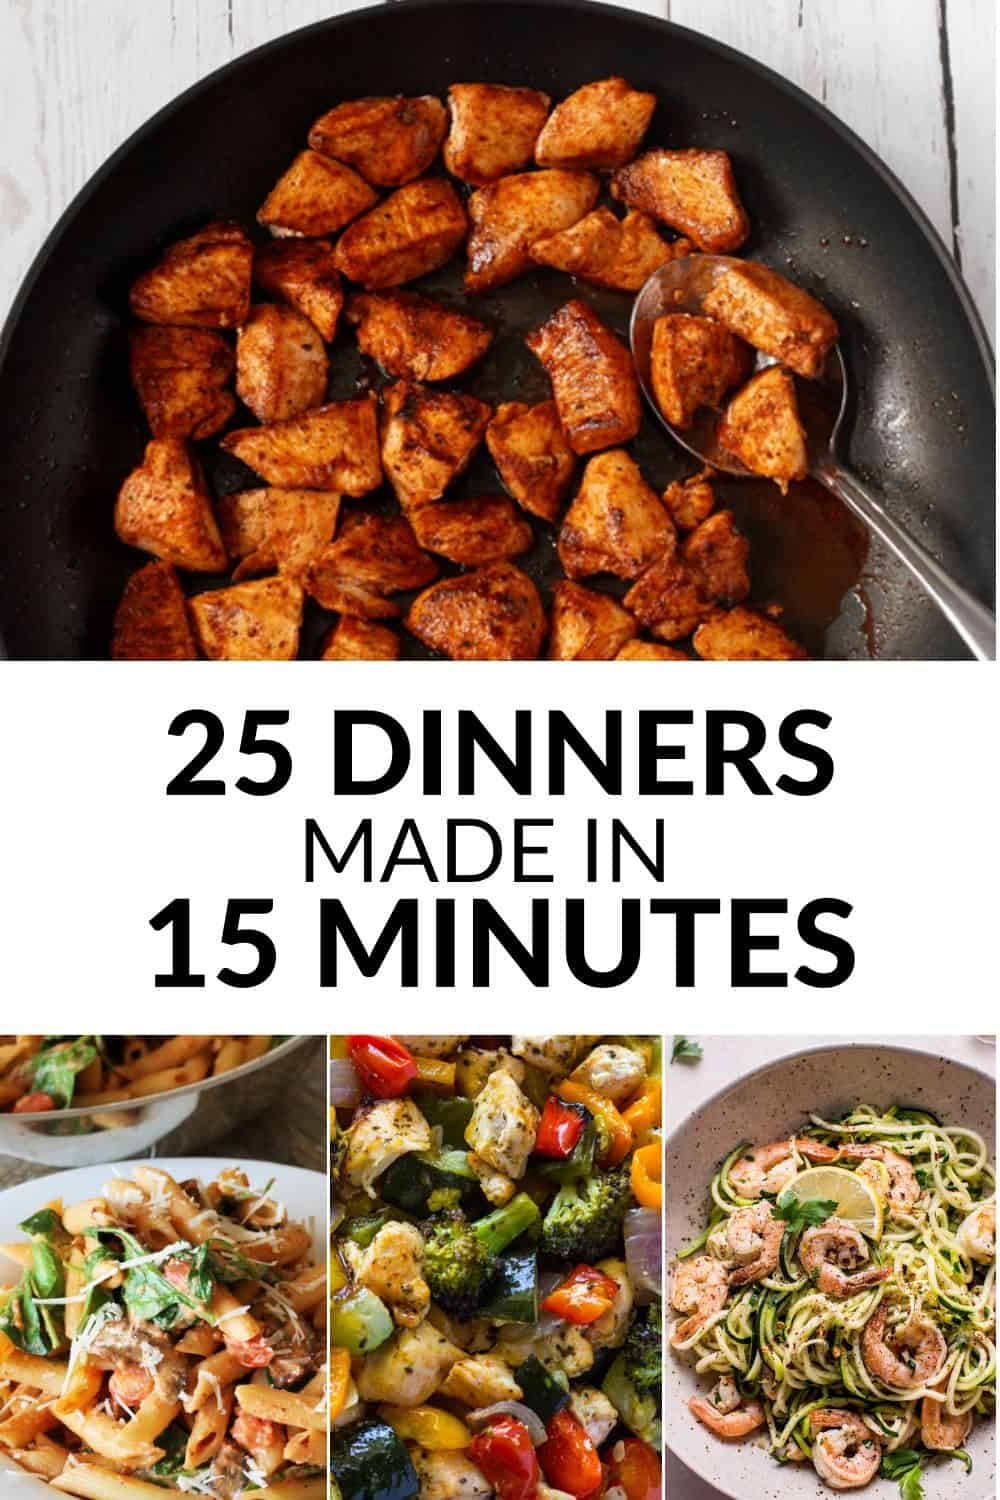 These 25 dinners in 15 minutes will give you some of the best fast dinner ideas you'll ever see!